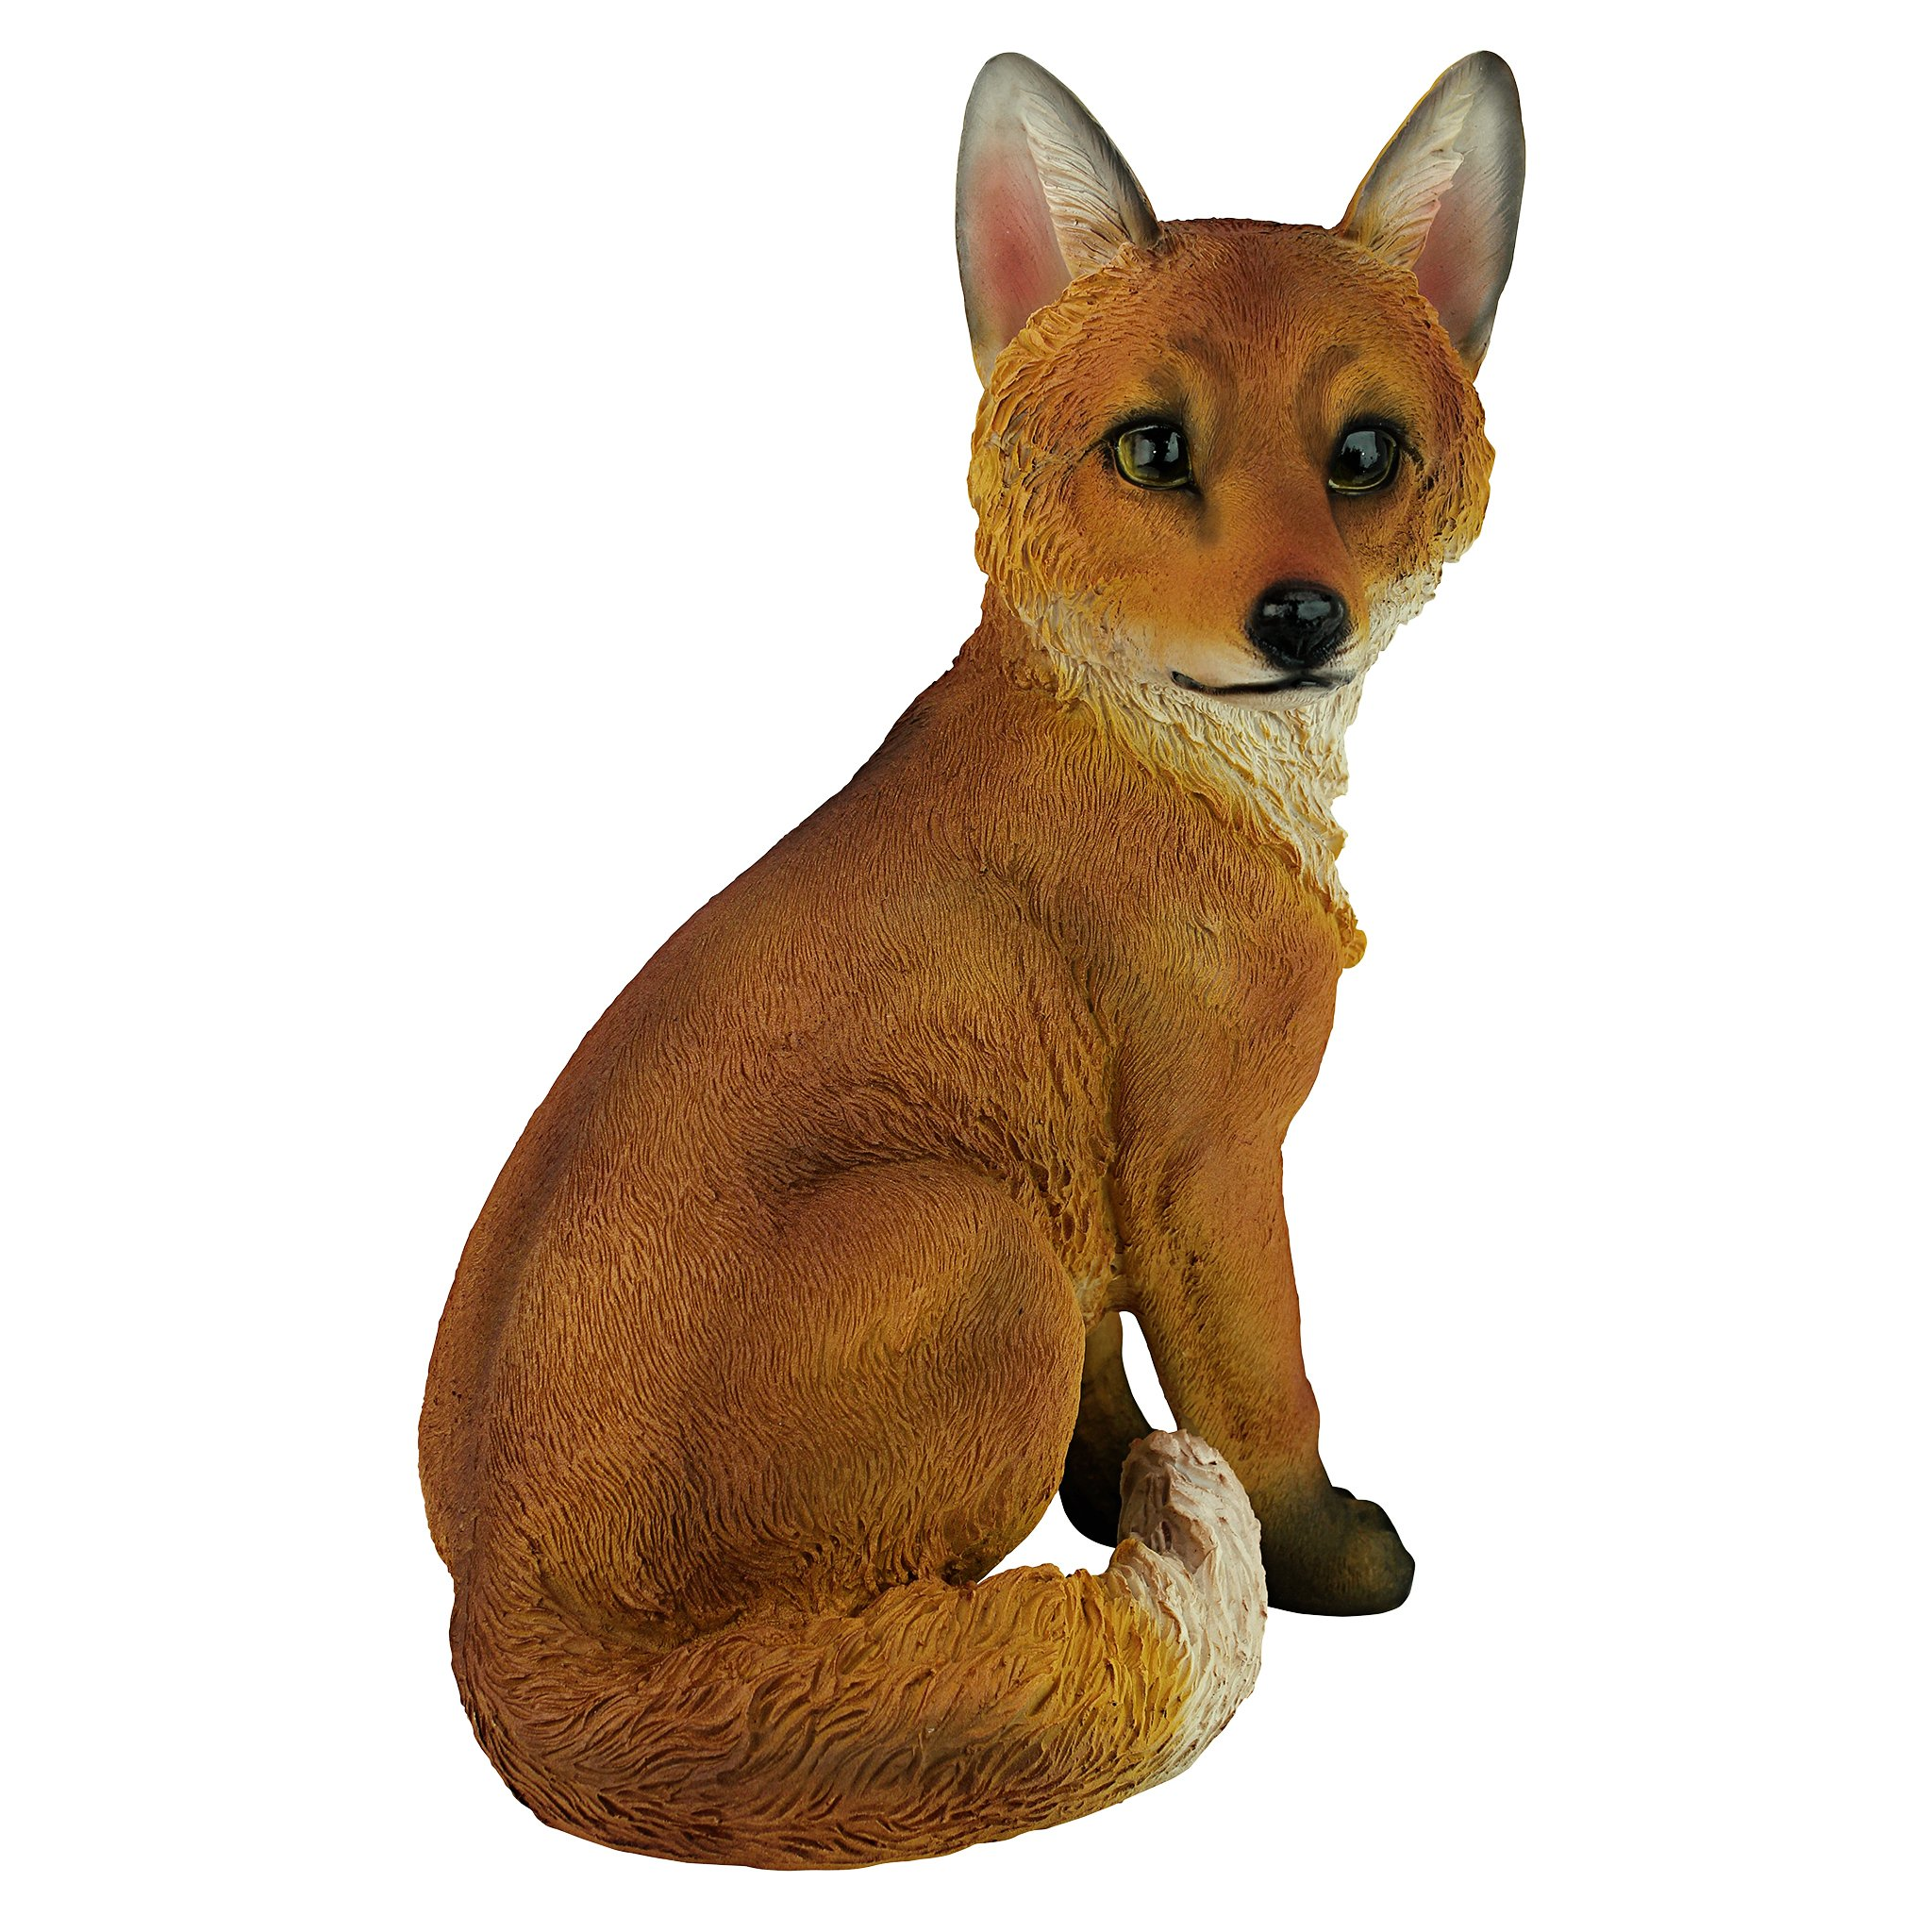 Design Toscano Woodie the Woodland Fox Garden Animal Statue, 14 Inch, Polyresin, Full Color